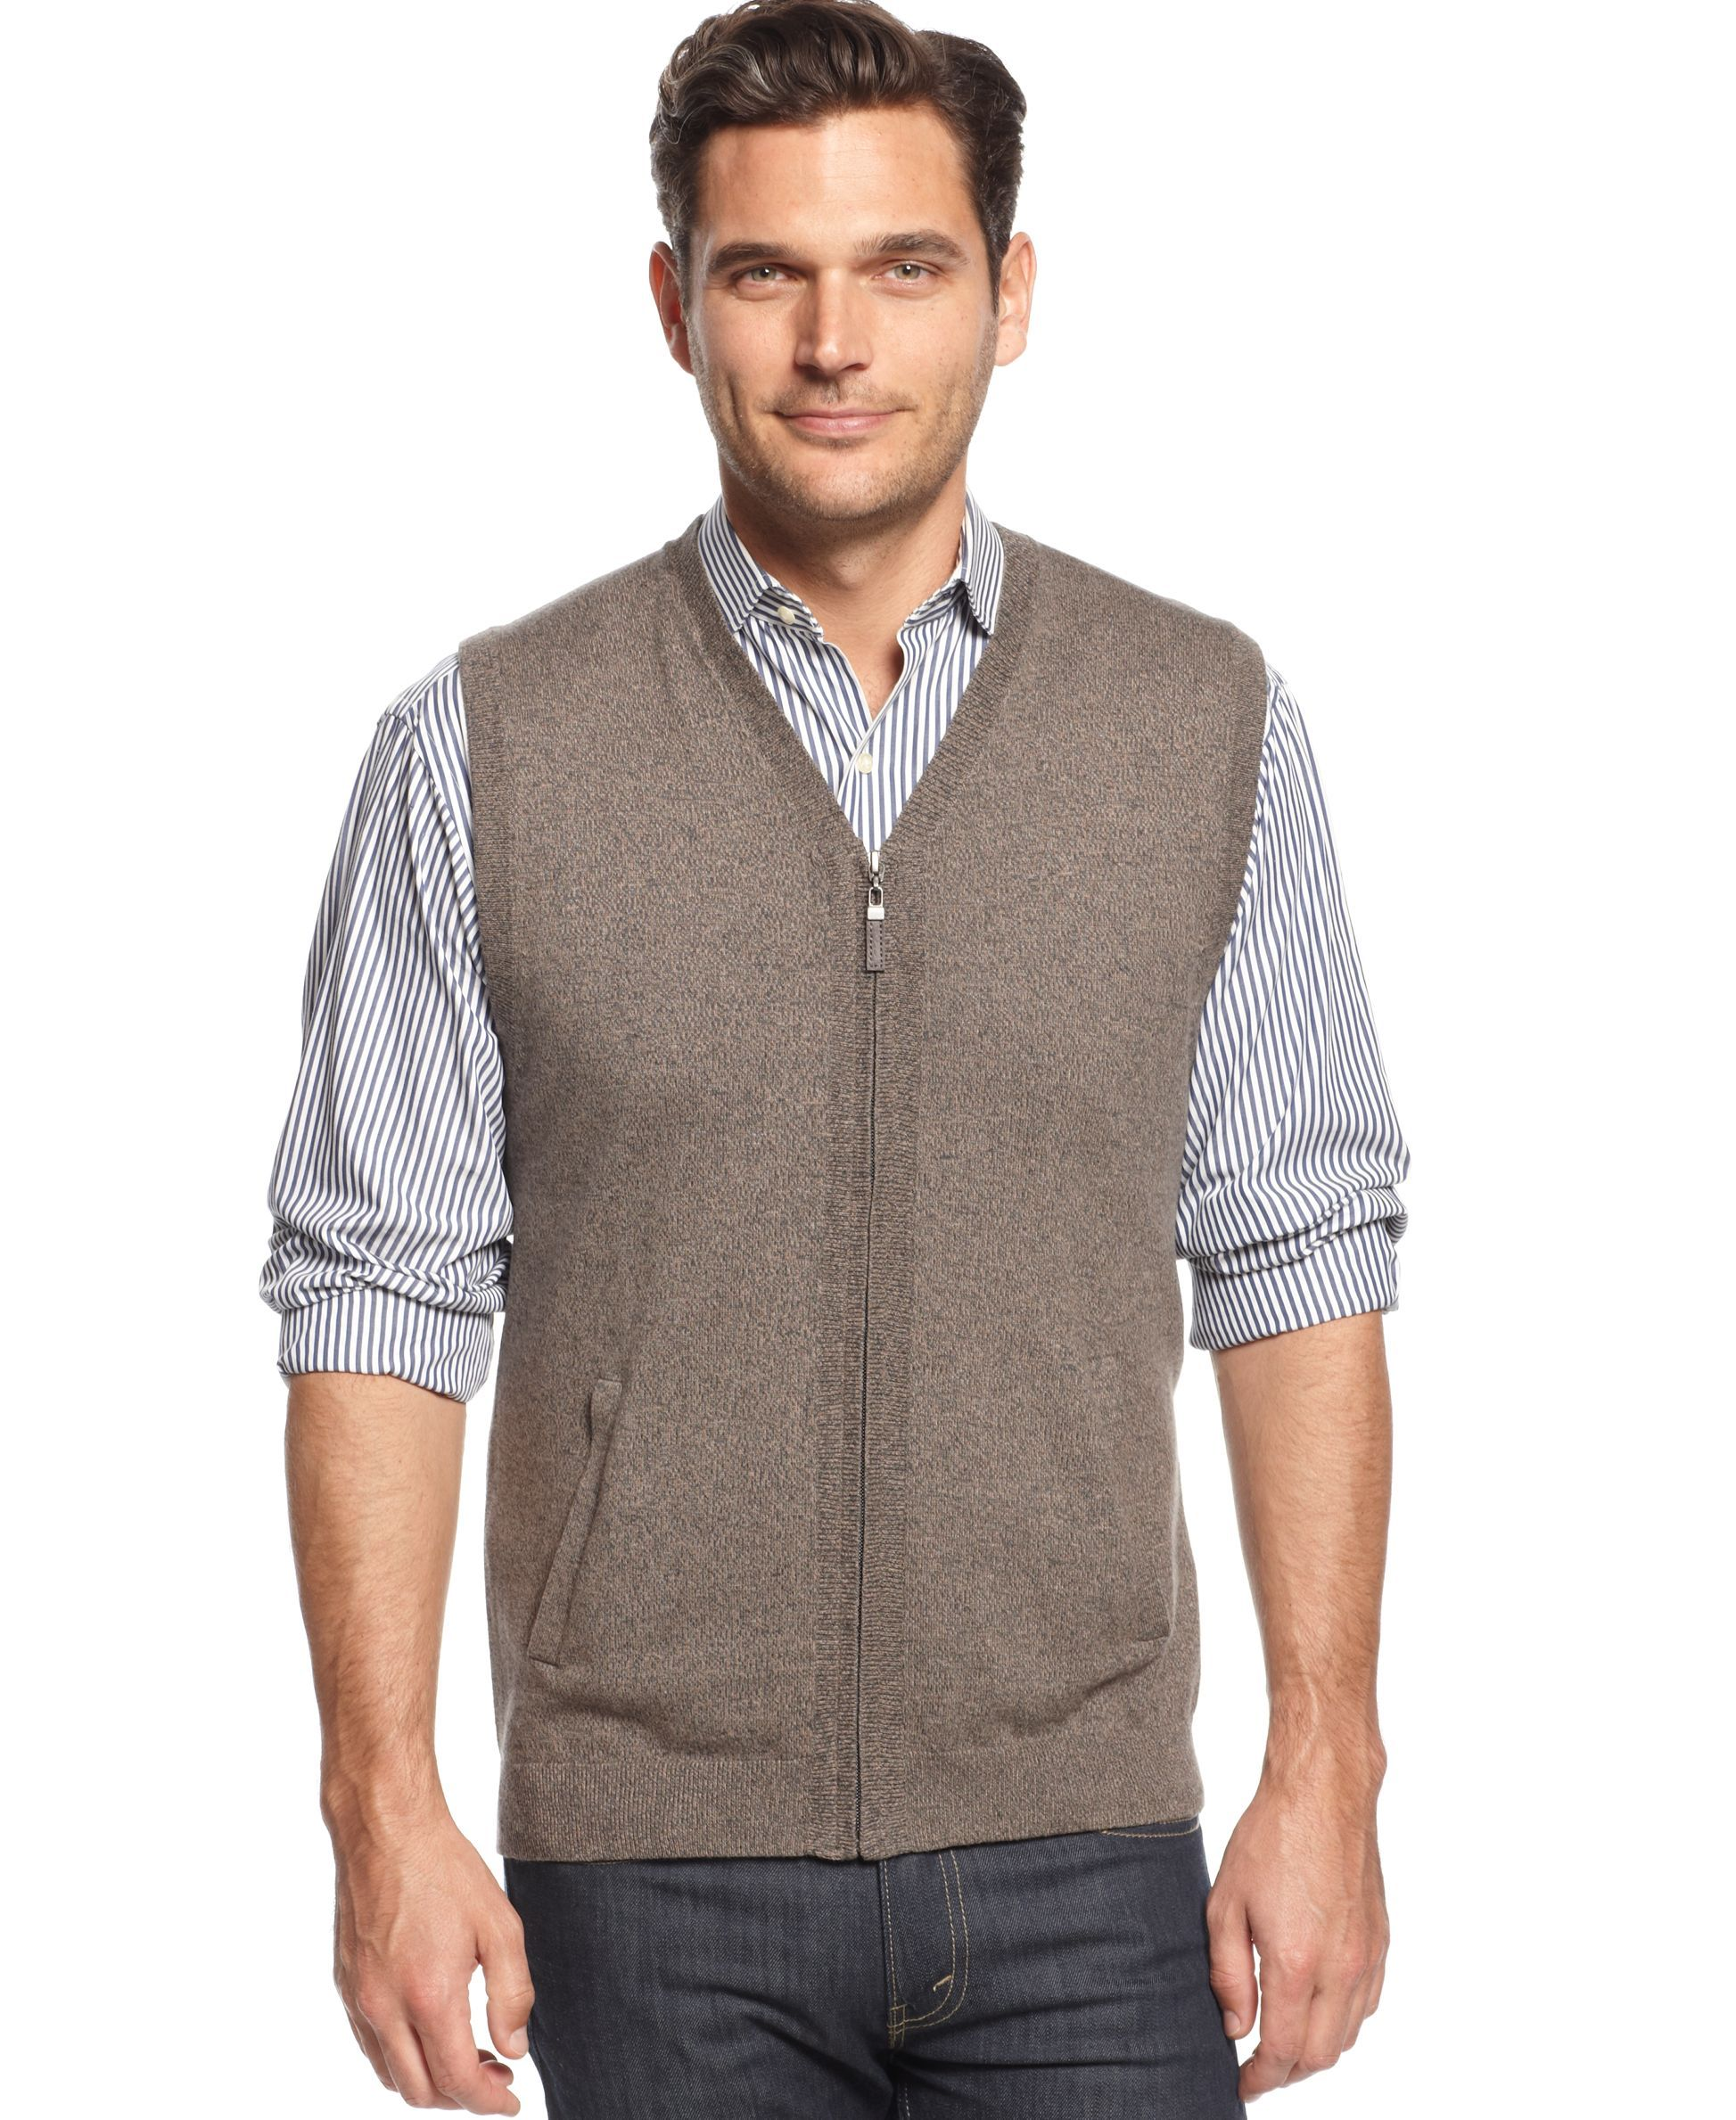 Tasso Elba Solid Full-Zip Sweater Vest | Products | Pinterest ...